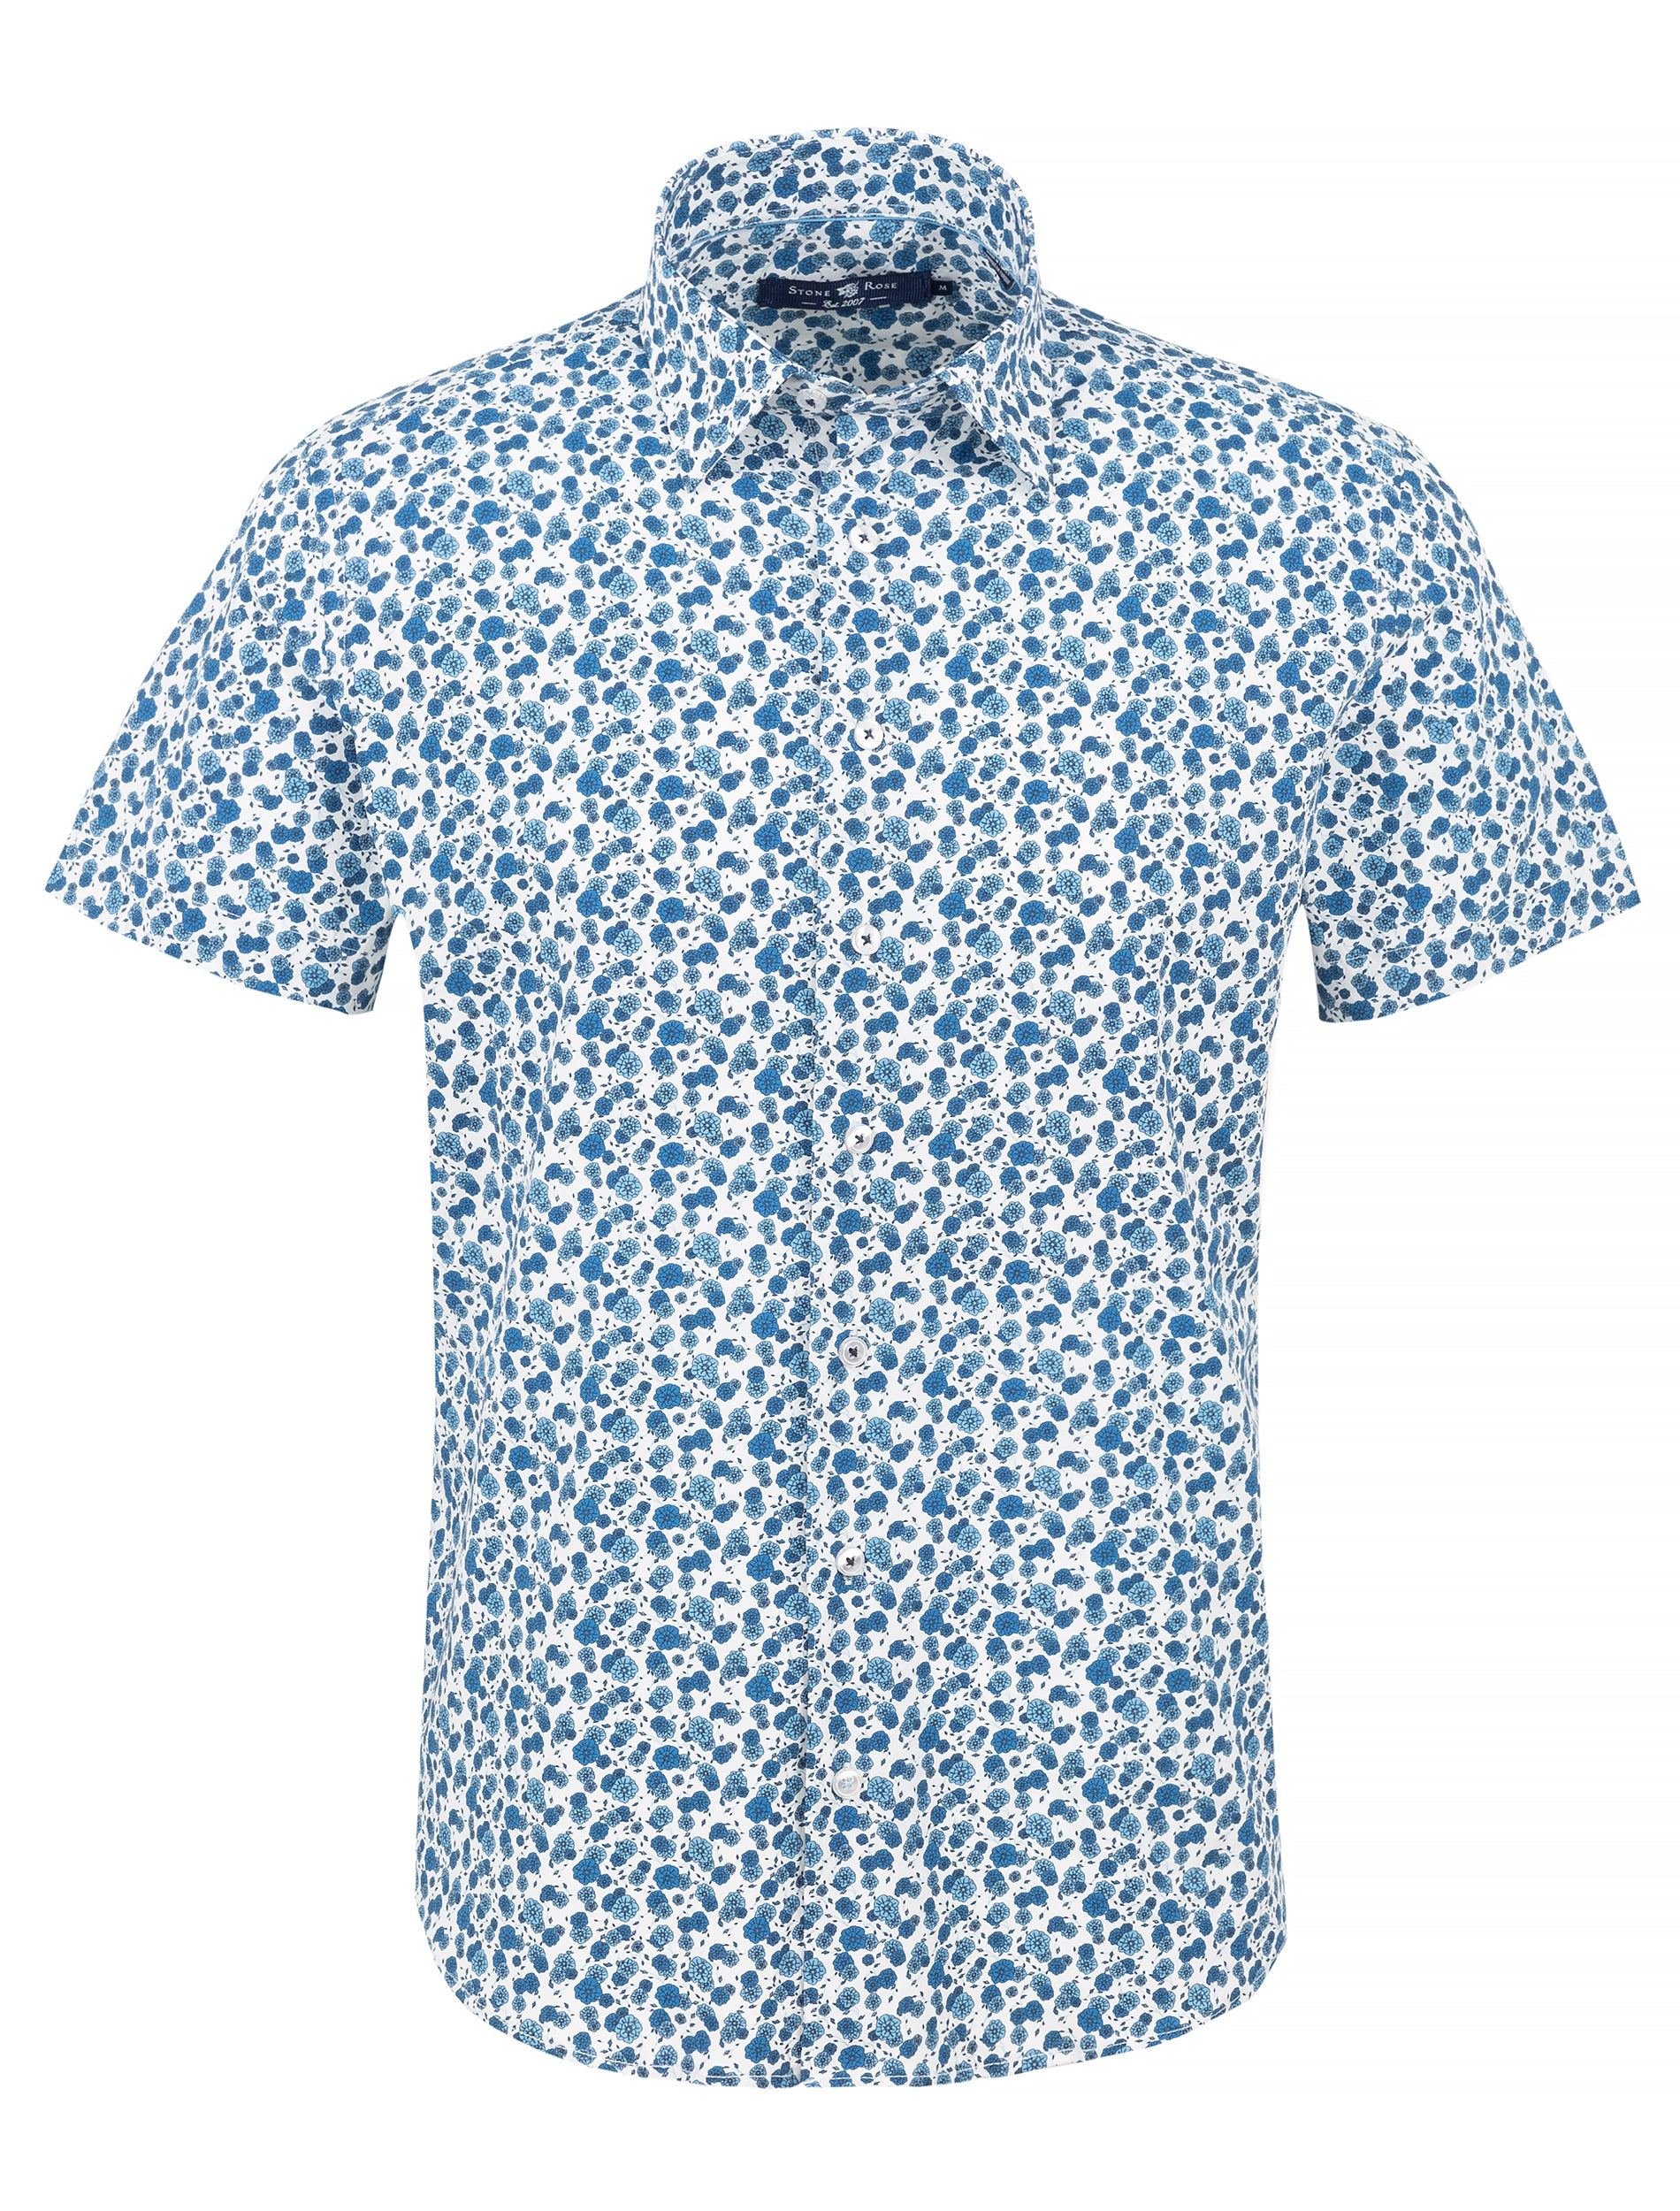 Blue Floral Print Short Sleeve Shirt-Stone Rose